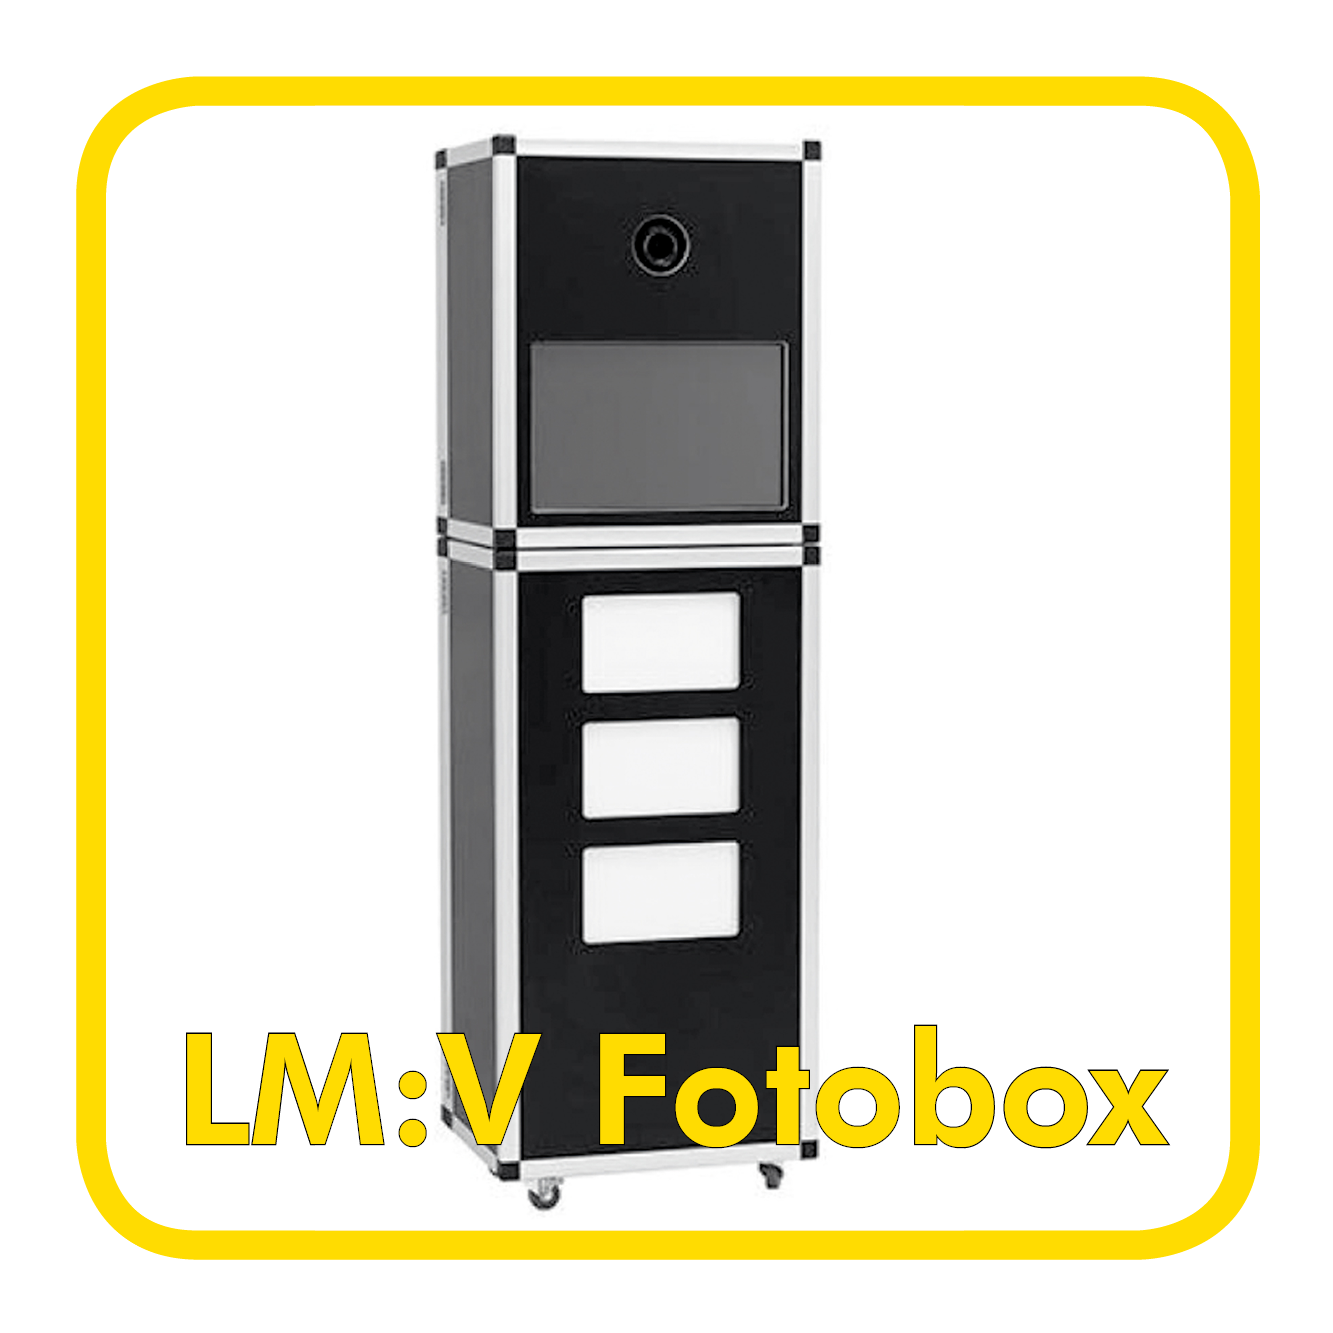 Icon Fotobox